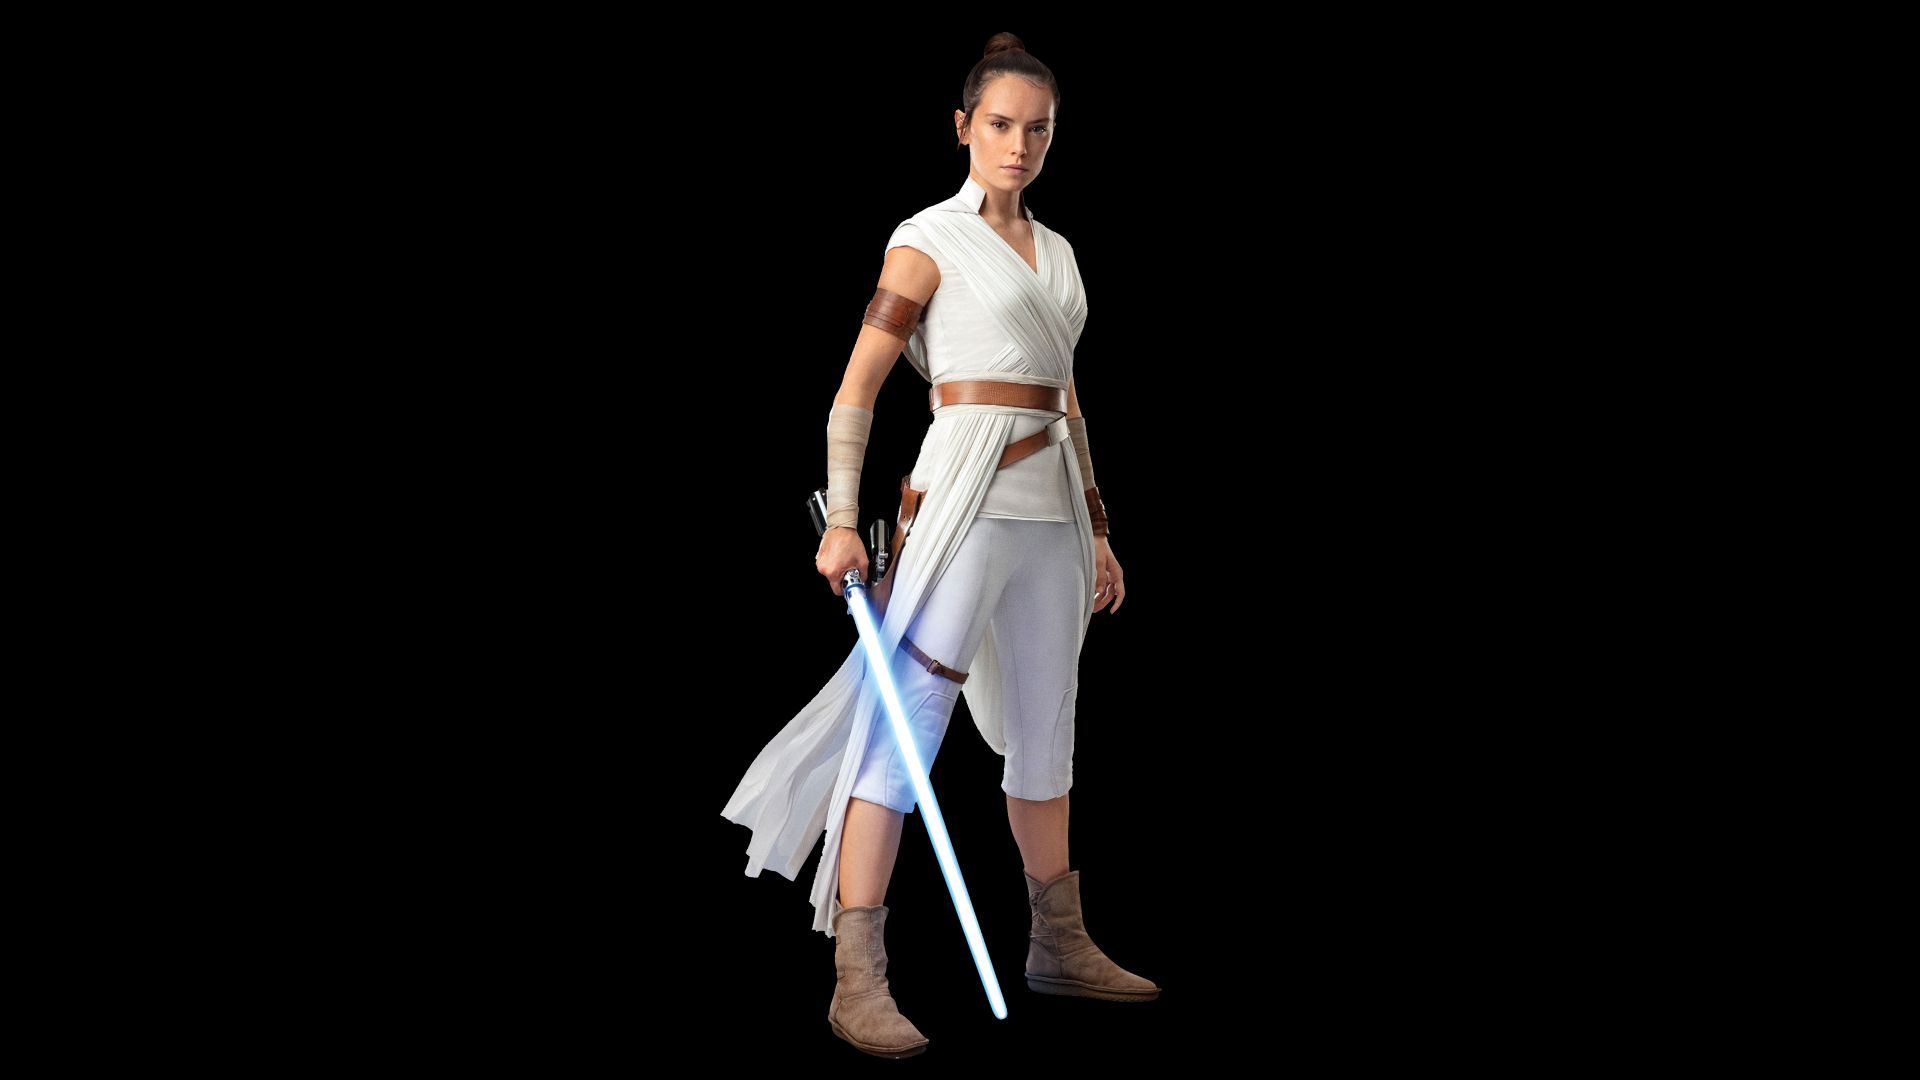 Star Wars The Rise of Skywalker Rey Daisy Ridley Wallpaper